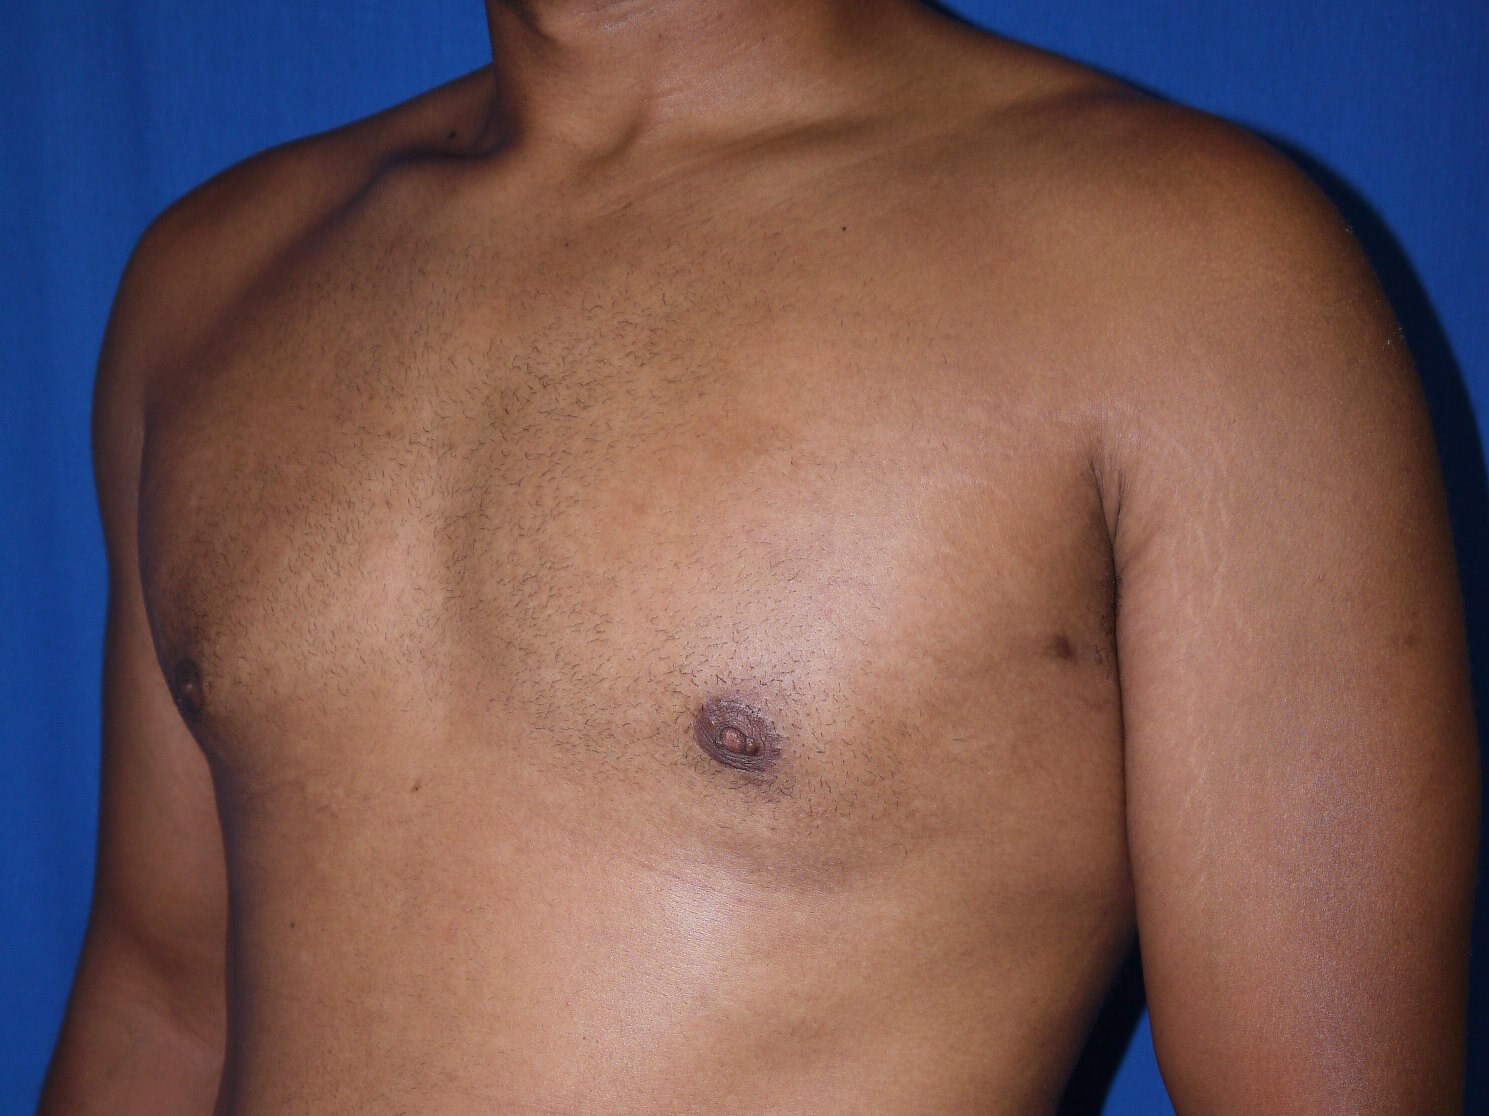 gynecomastia after - Left Oblique View